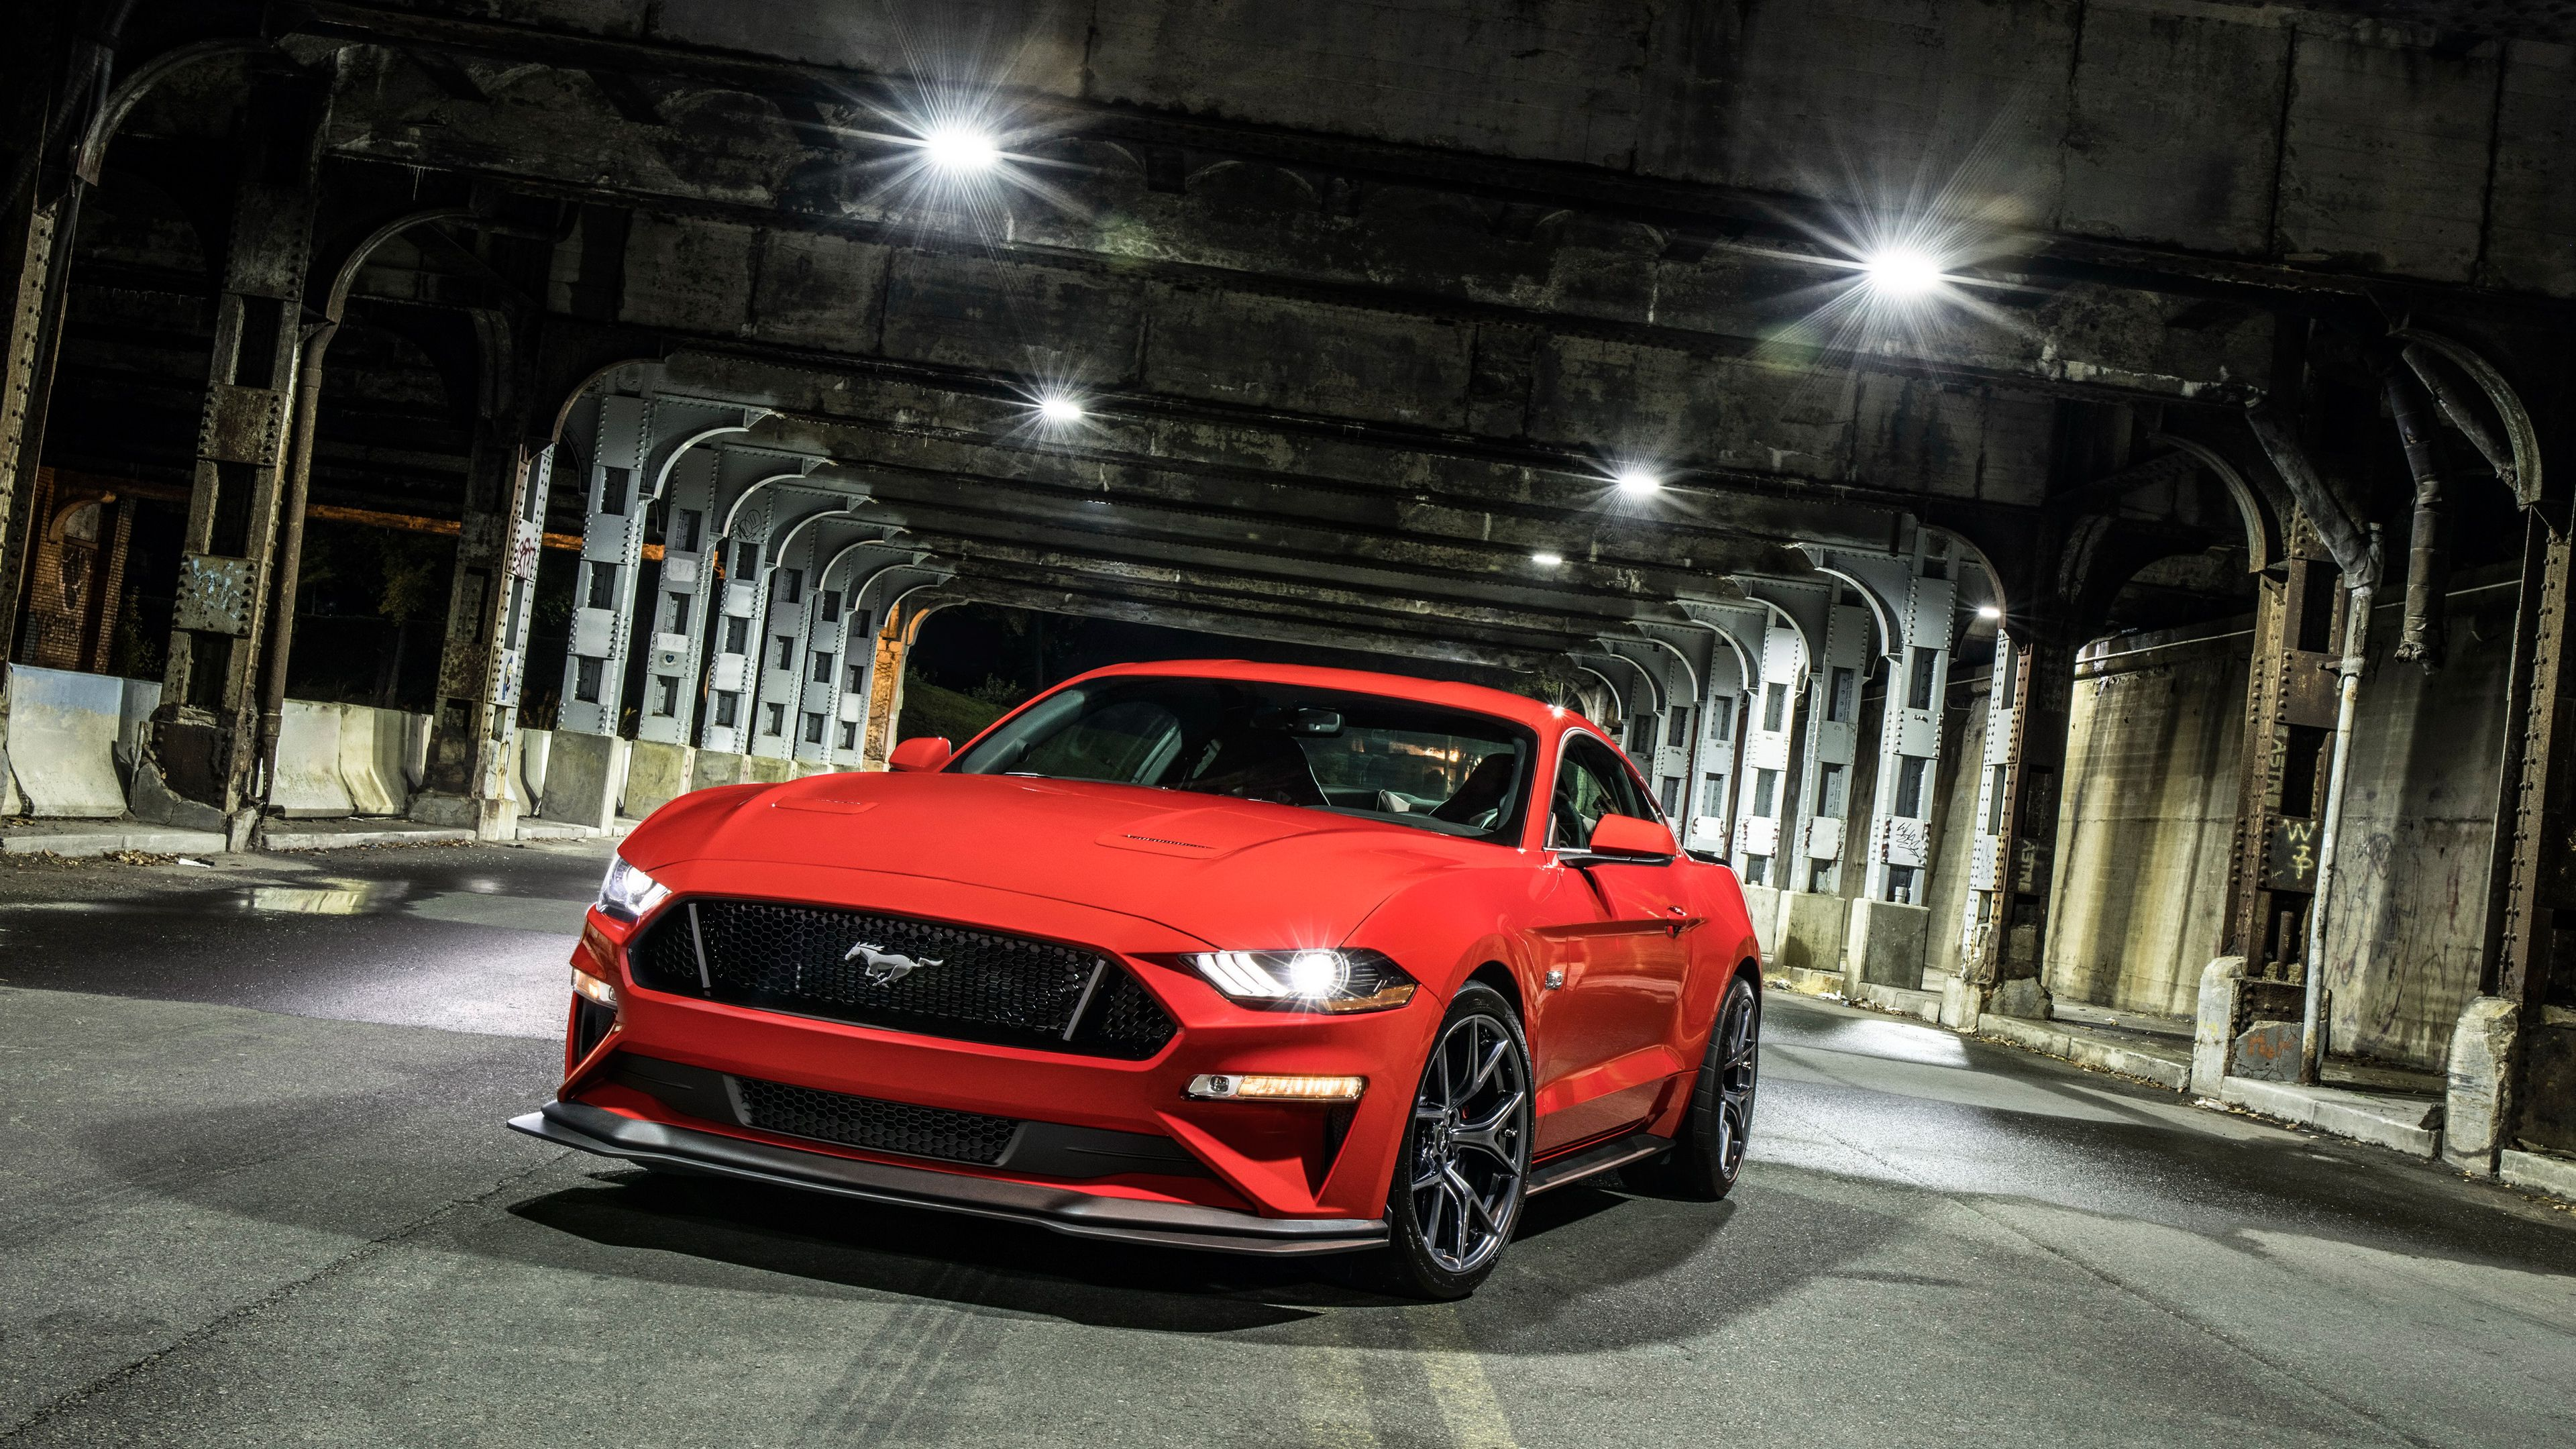 2018 Ford Mustang GT Level 2 Performance Pack 4K 6 Wallpapers